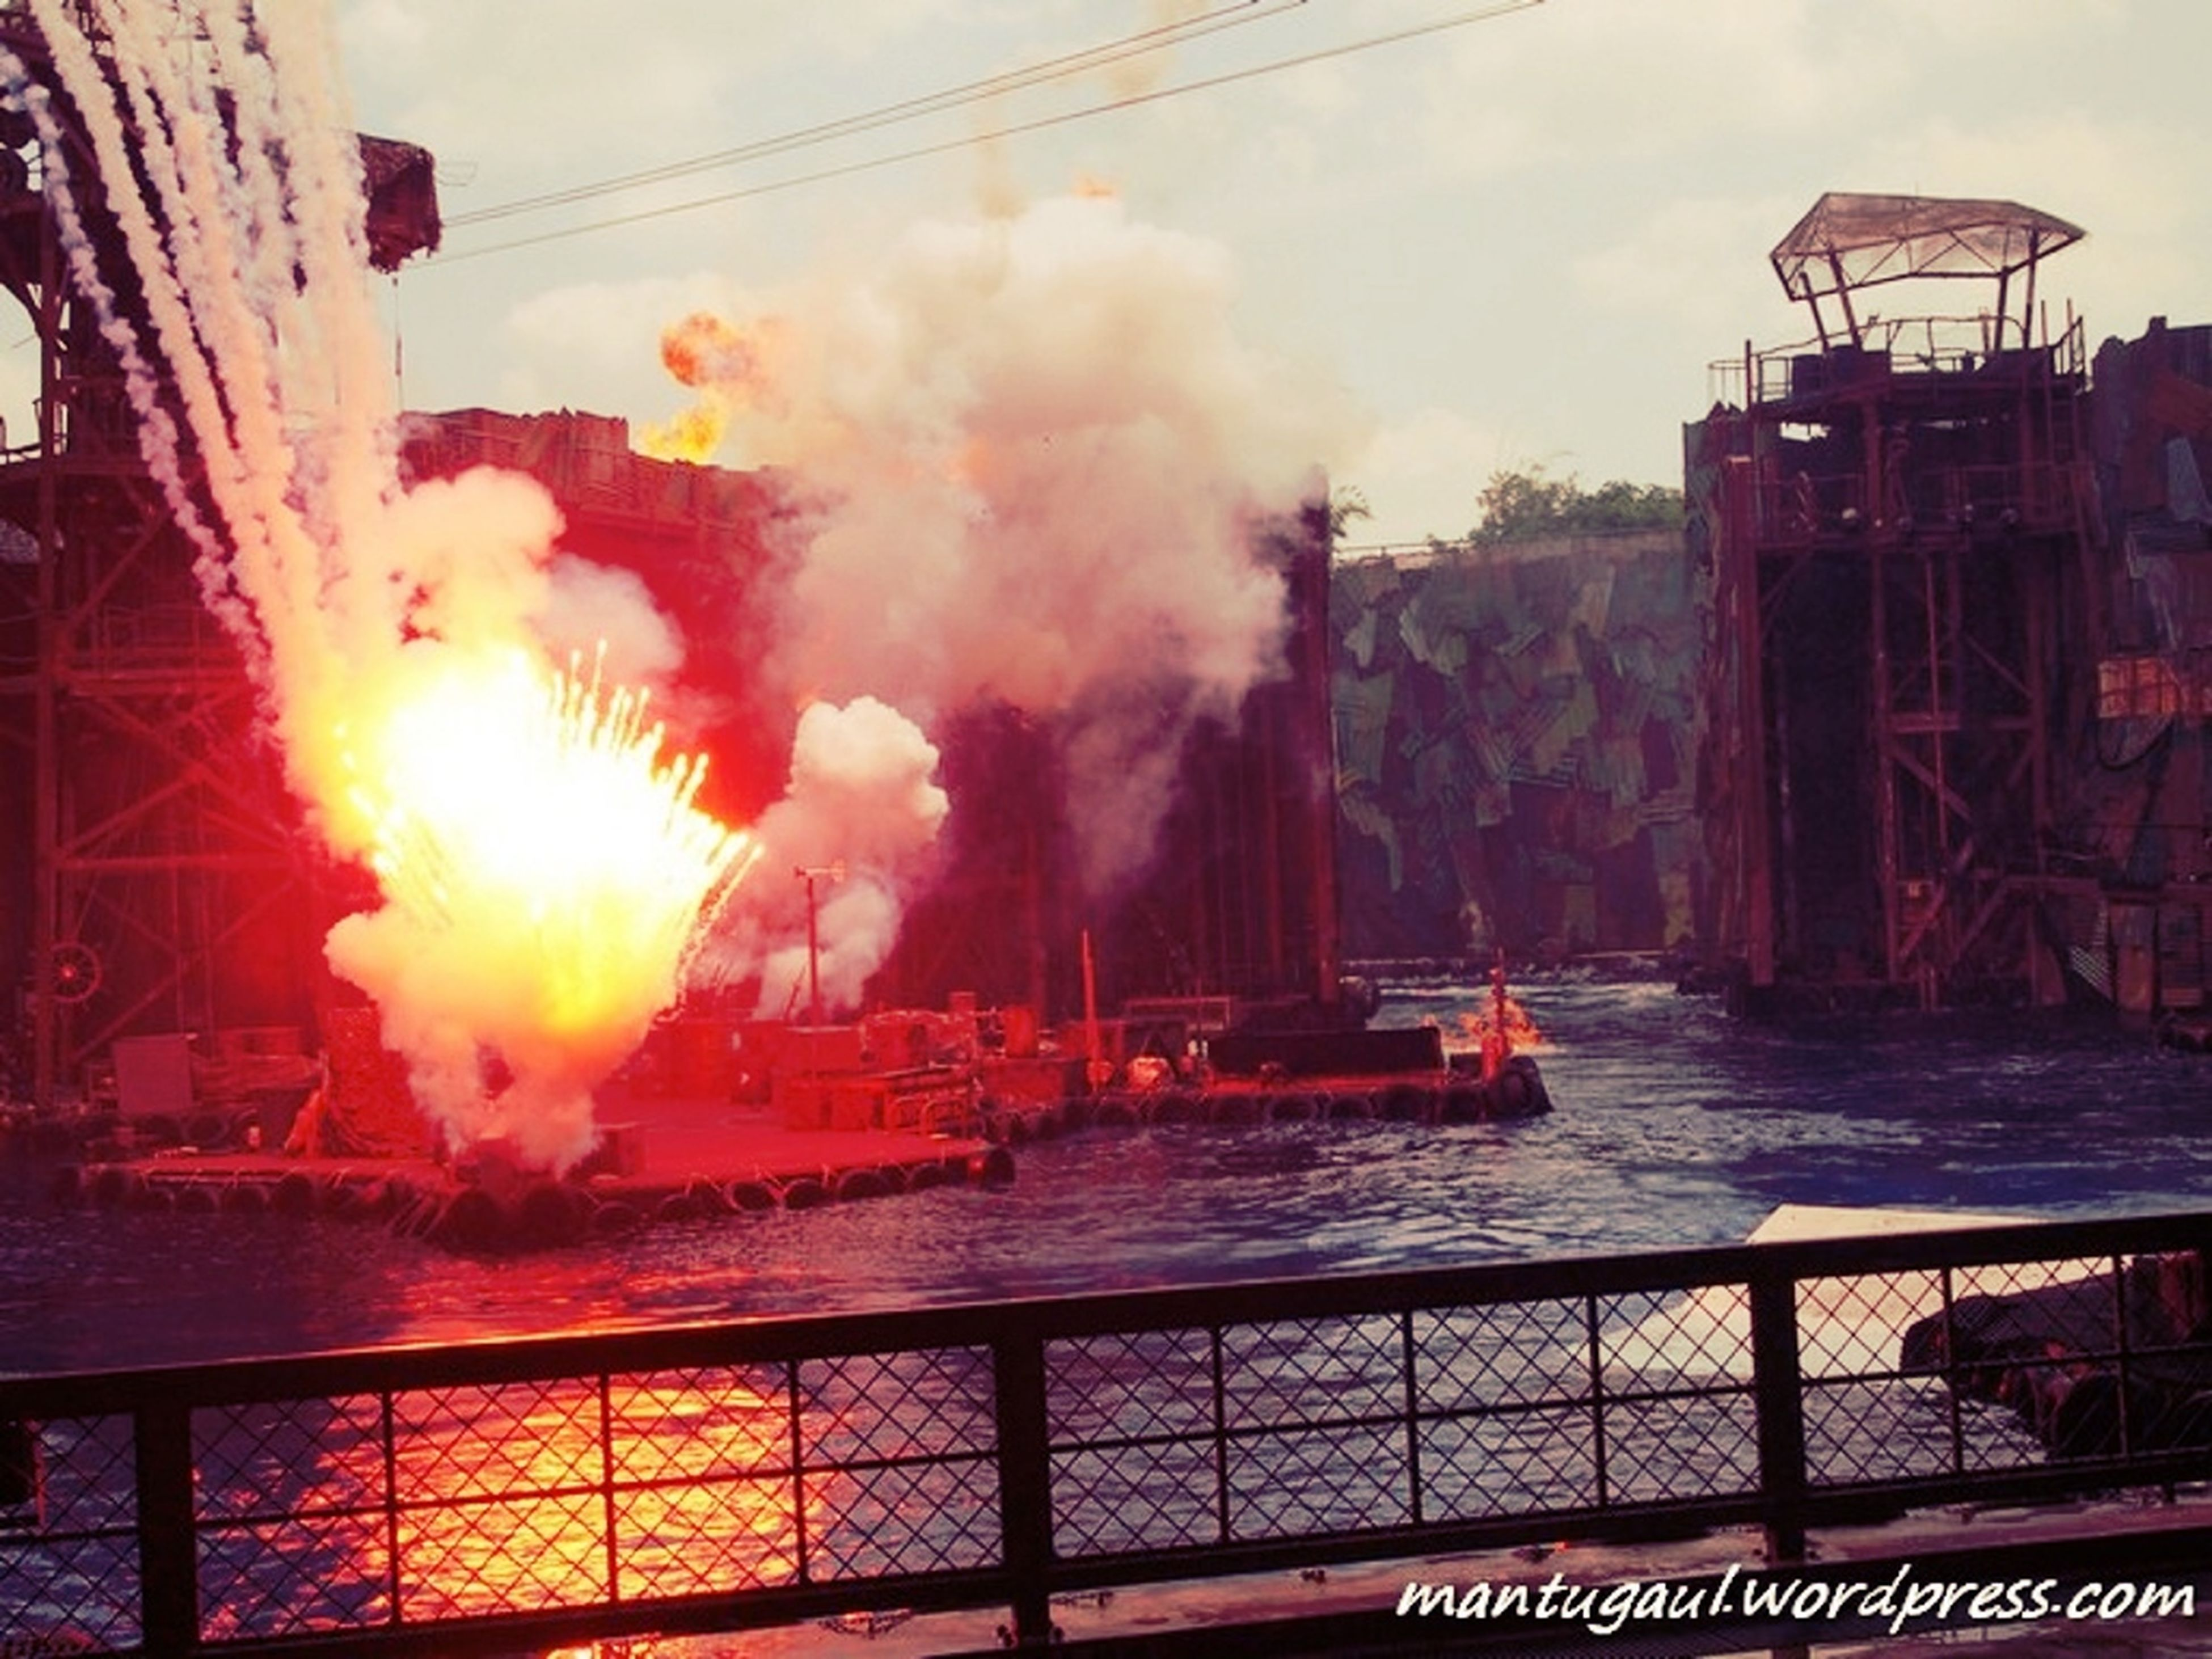 building exterior, built structure, sky, water, architecture, cloud - sky, smoke - physical structure, nautical vessel, crane - construction machinery, industry, transportation, outdoors, commercial dock, fire - natural phenomenon, sunset, harbor, flame, railing, burning, mode of transport